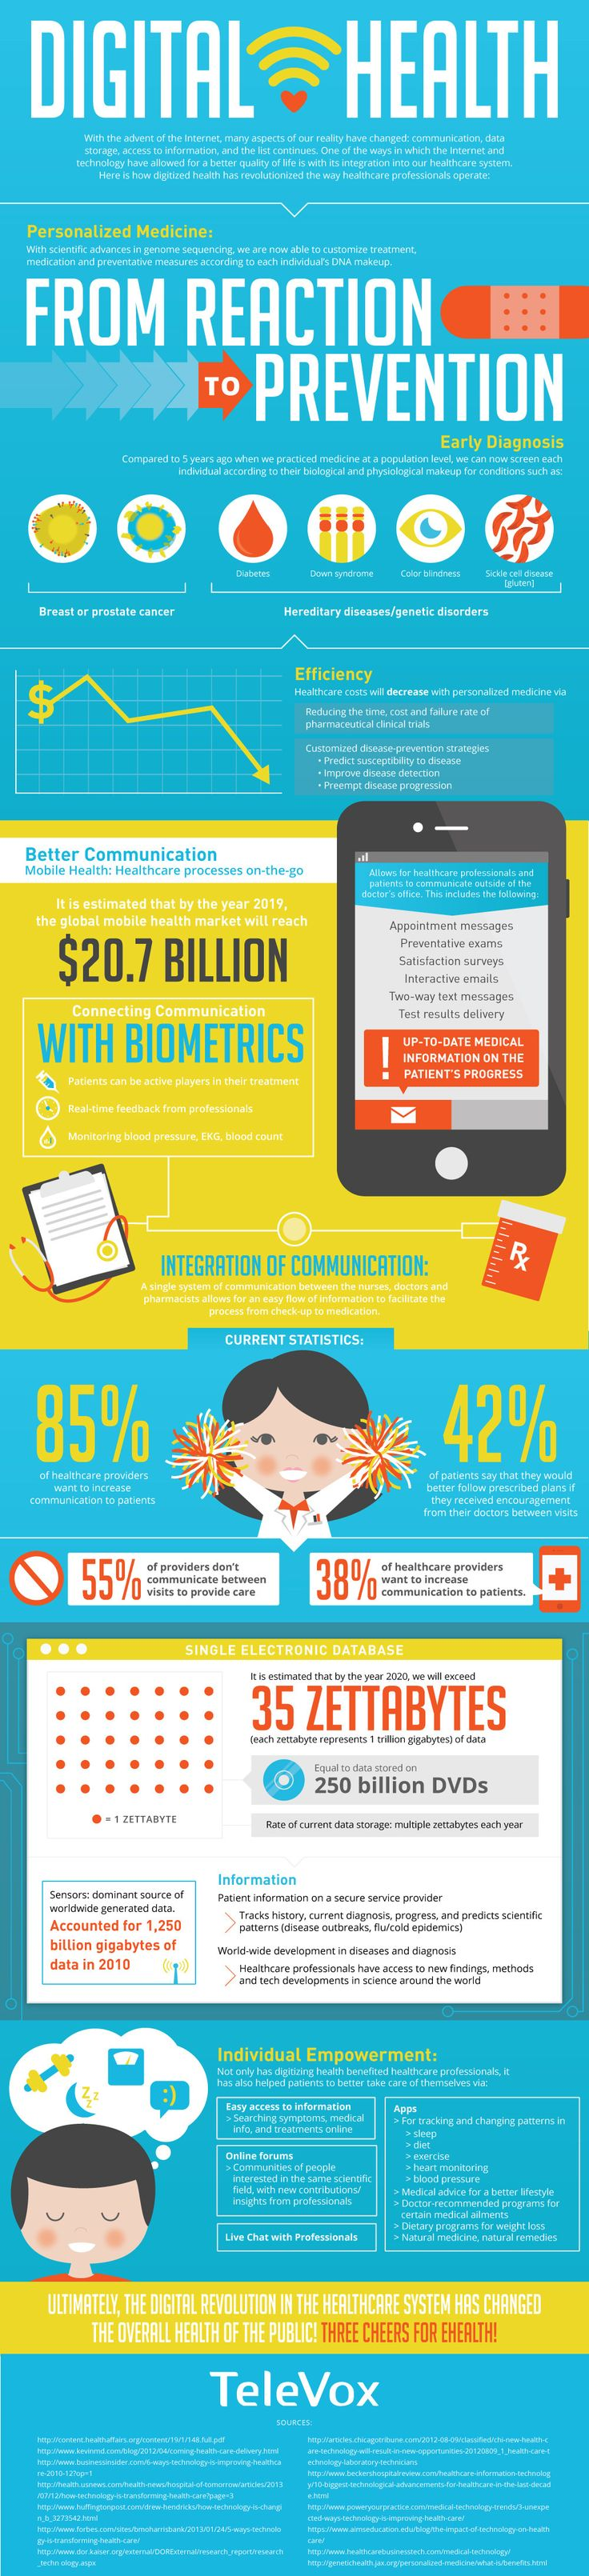 Digital Health #infographic #Health #Technology